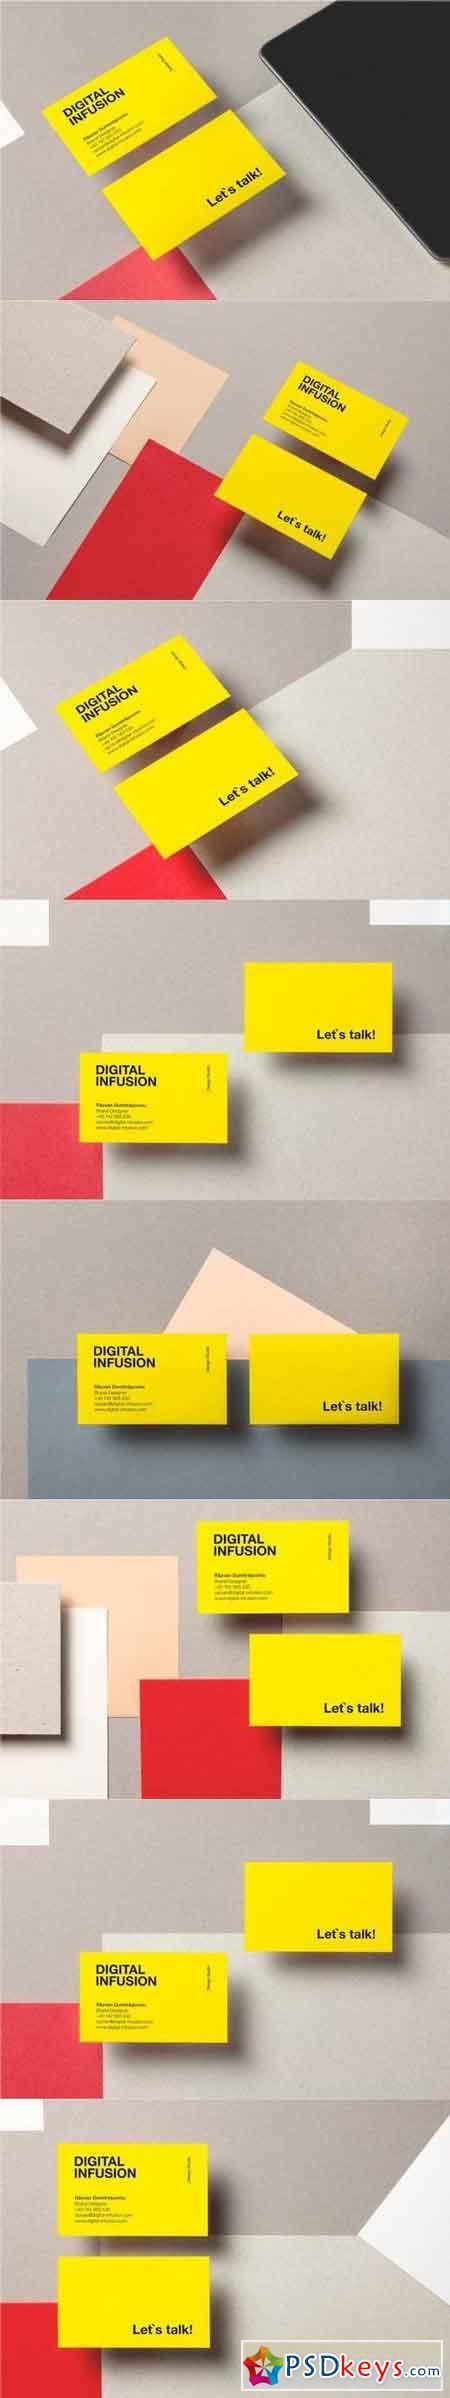 Business cards mockup vol1 free download photoshop vector stock business cards mockup vol1 reheart Image collections